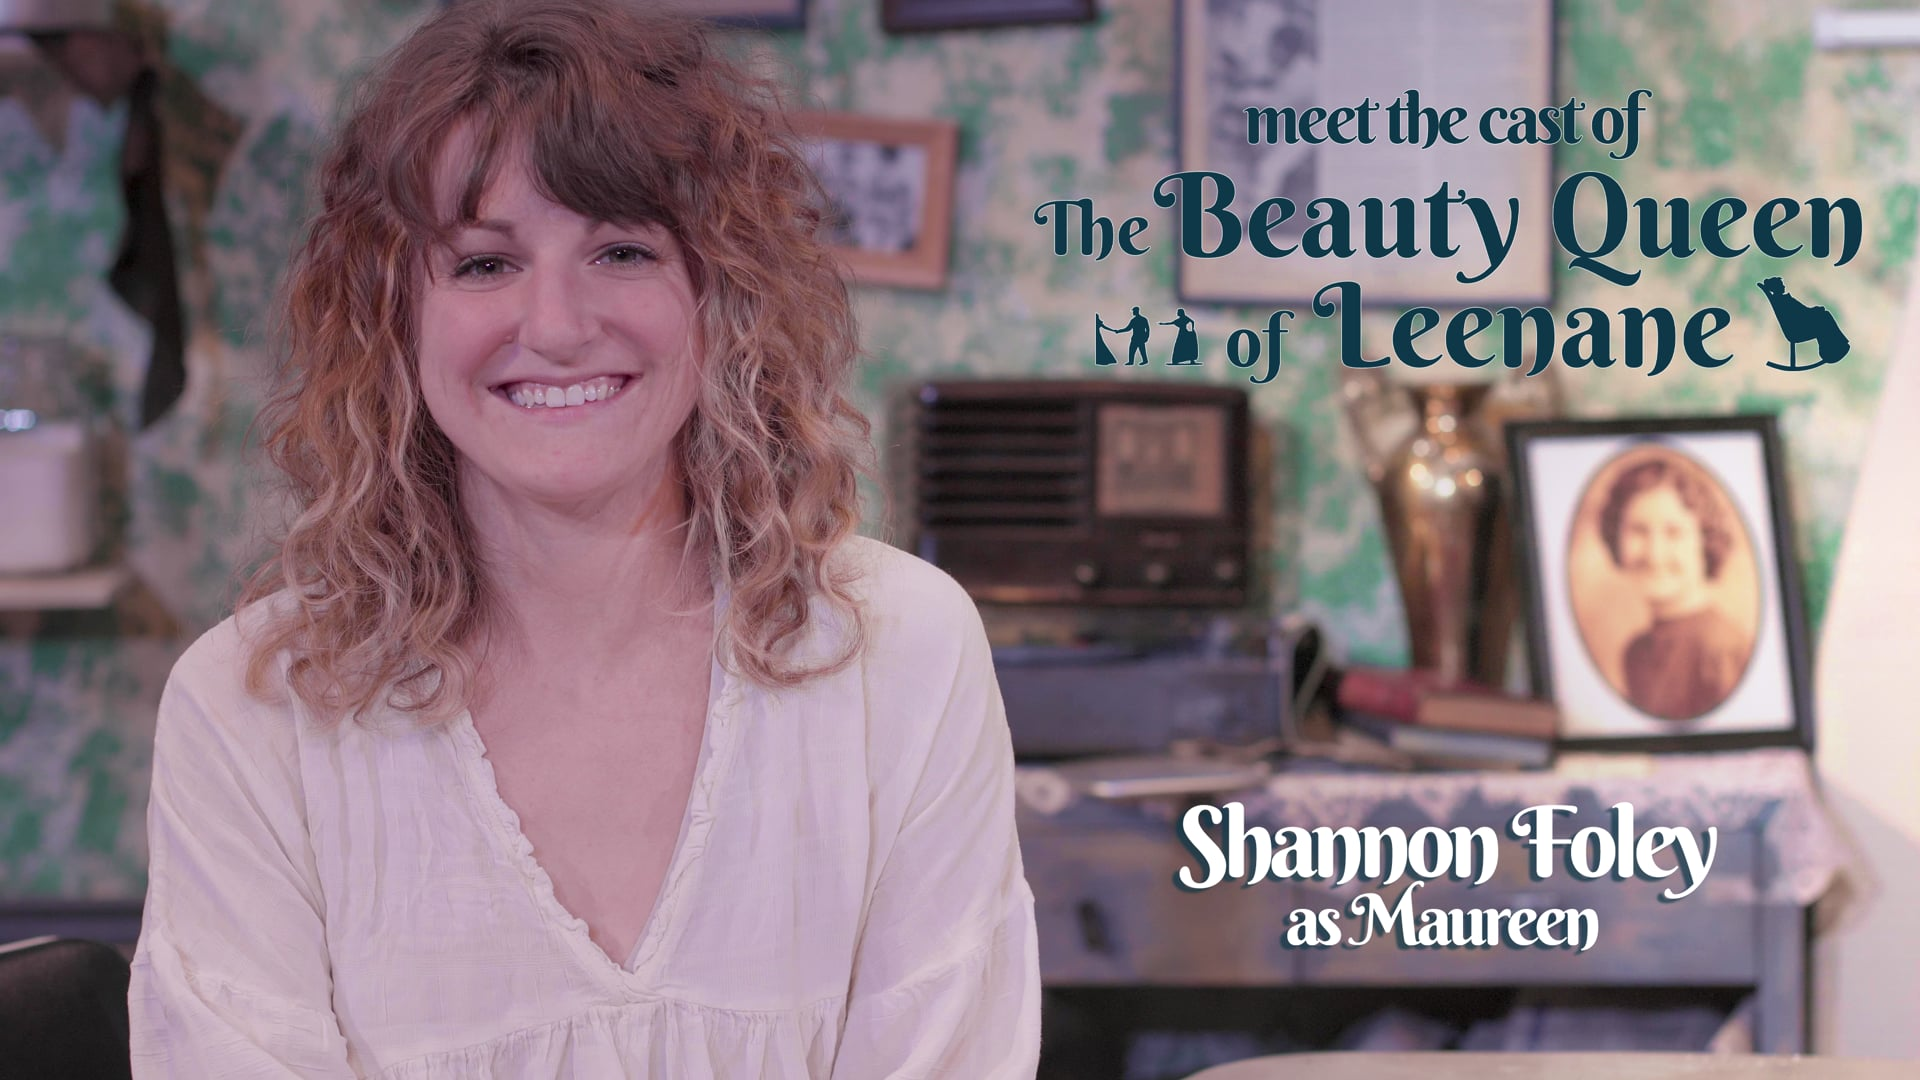 """Meet the Cast of """"The Beauty Queen of Leenane"""" (Shannon Foley as Maureen)"""